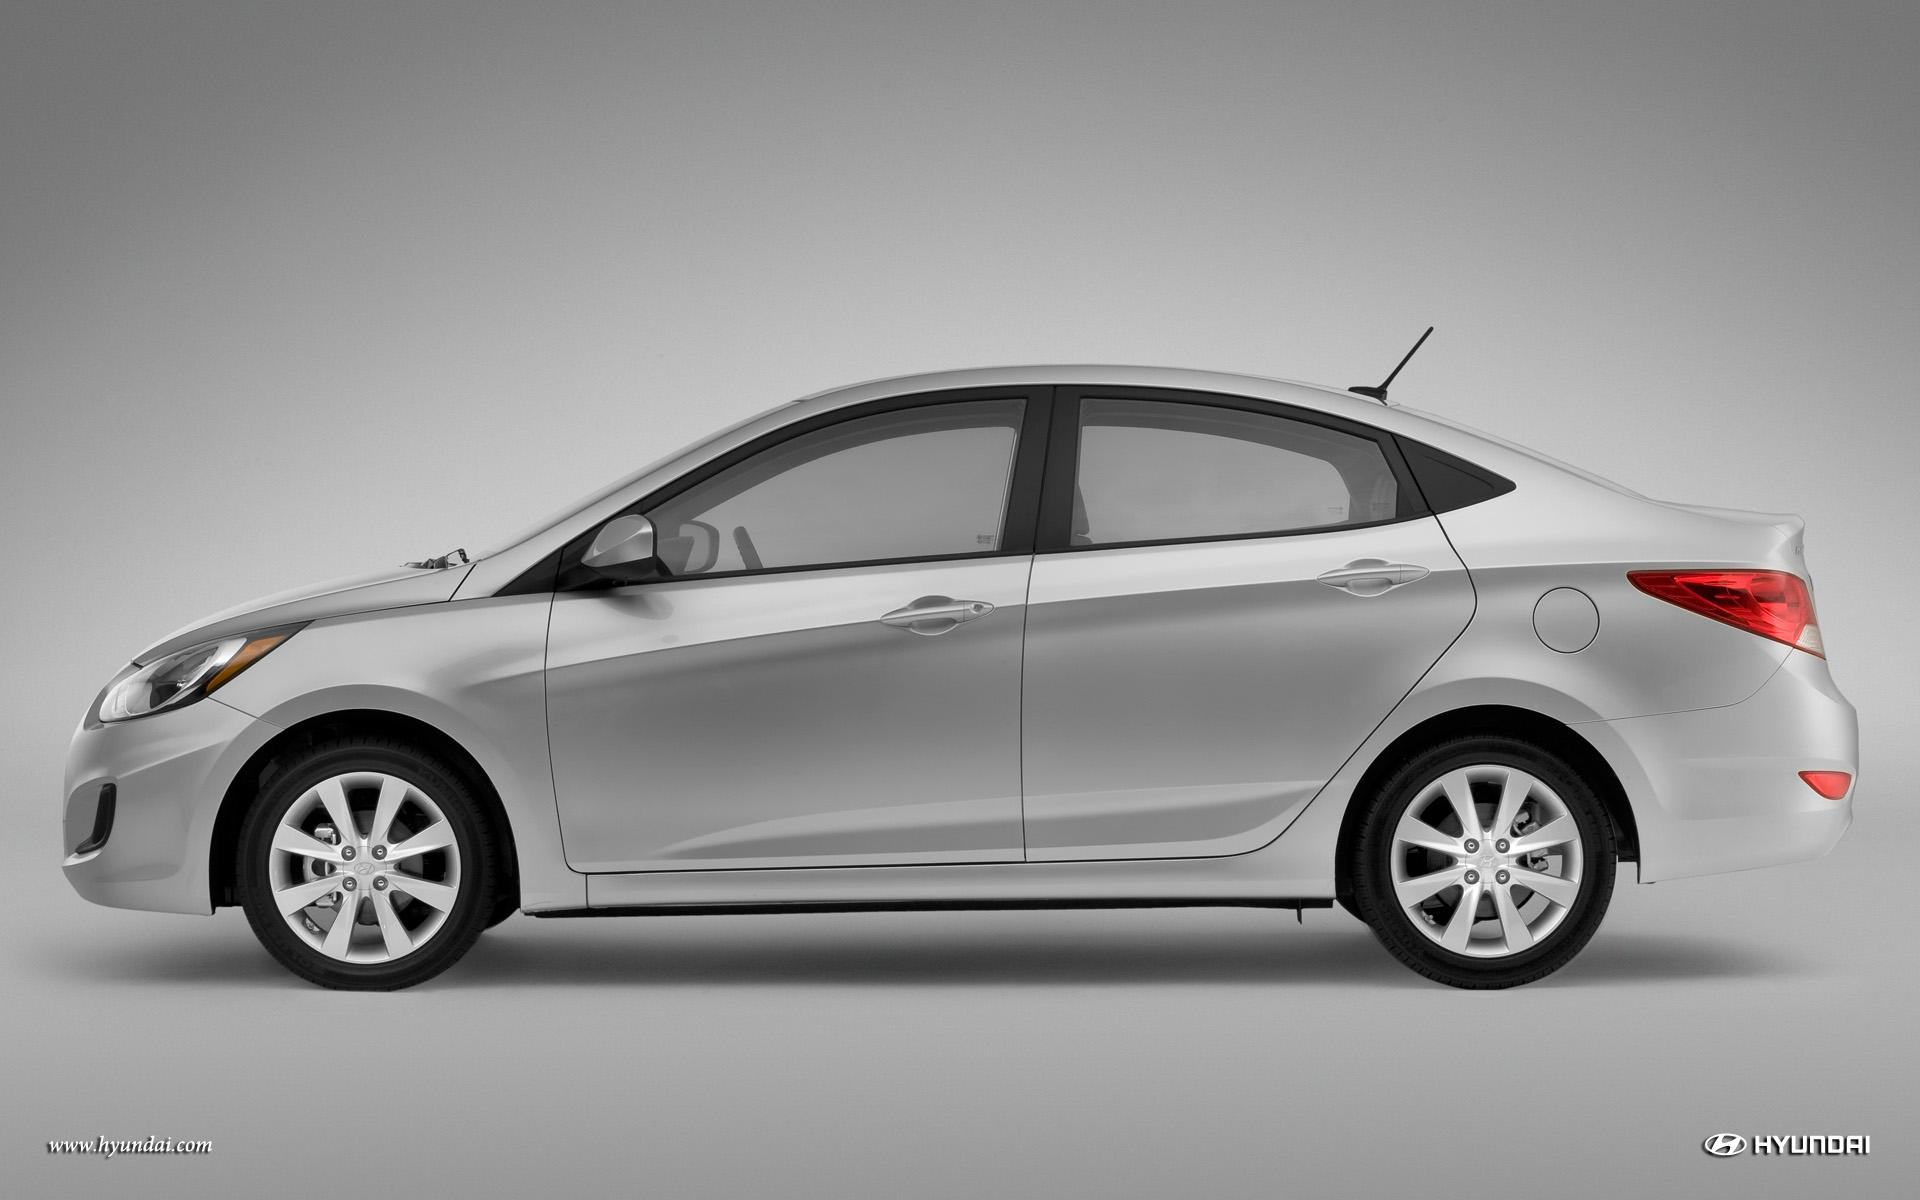 2013 Hyundai Accent News And Information Conceptcarz Com